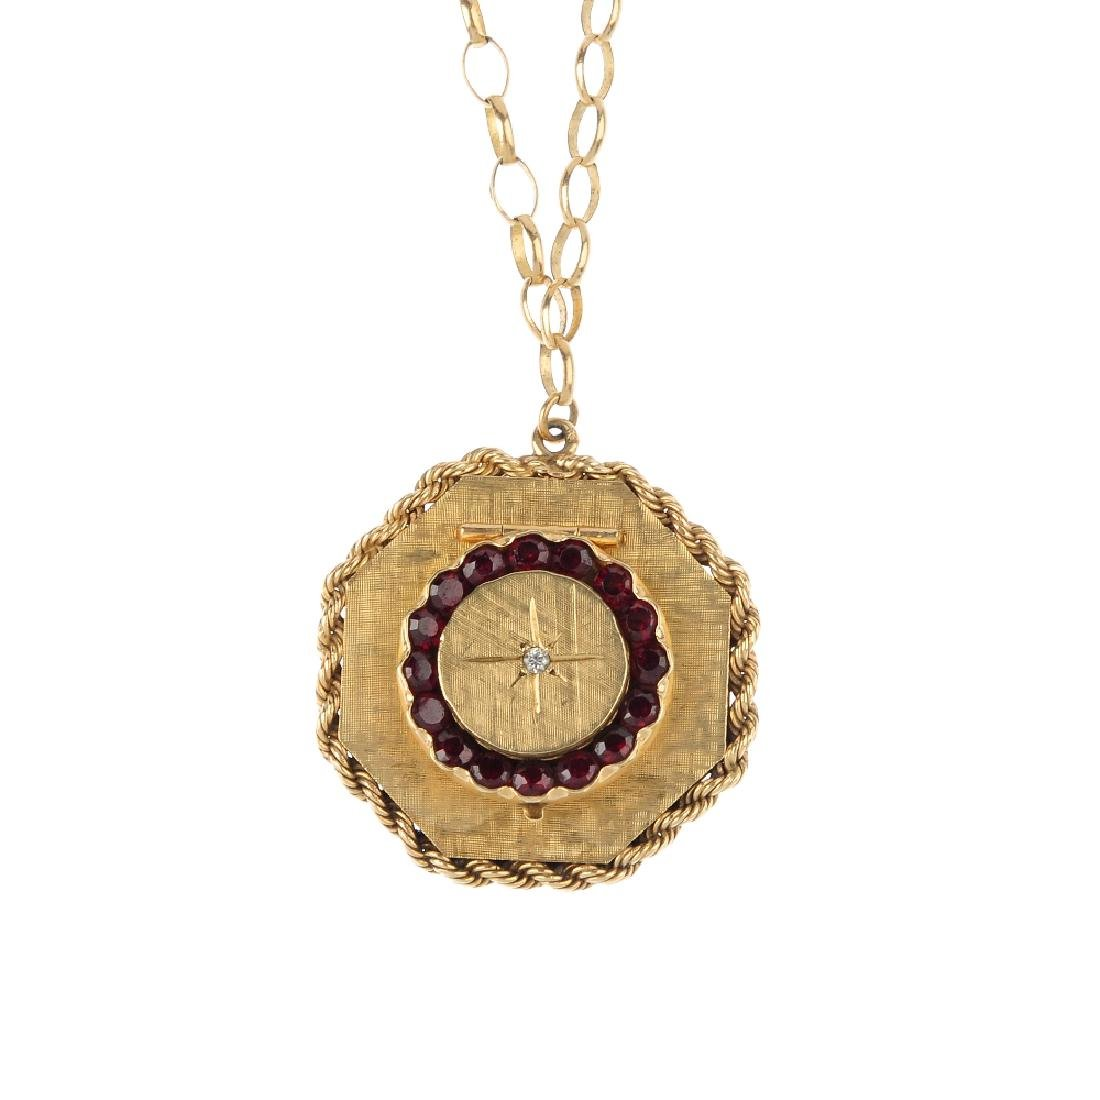 A gem-set locket. Of hexagonal outline, the textured